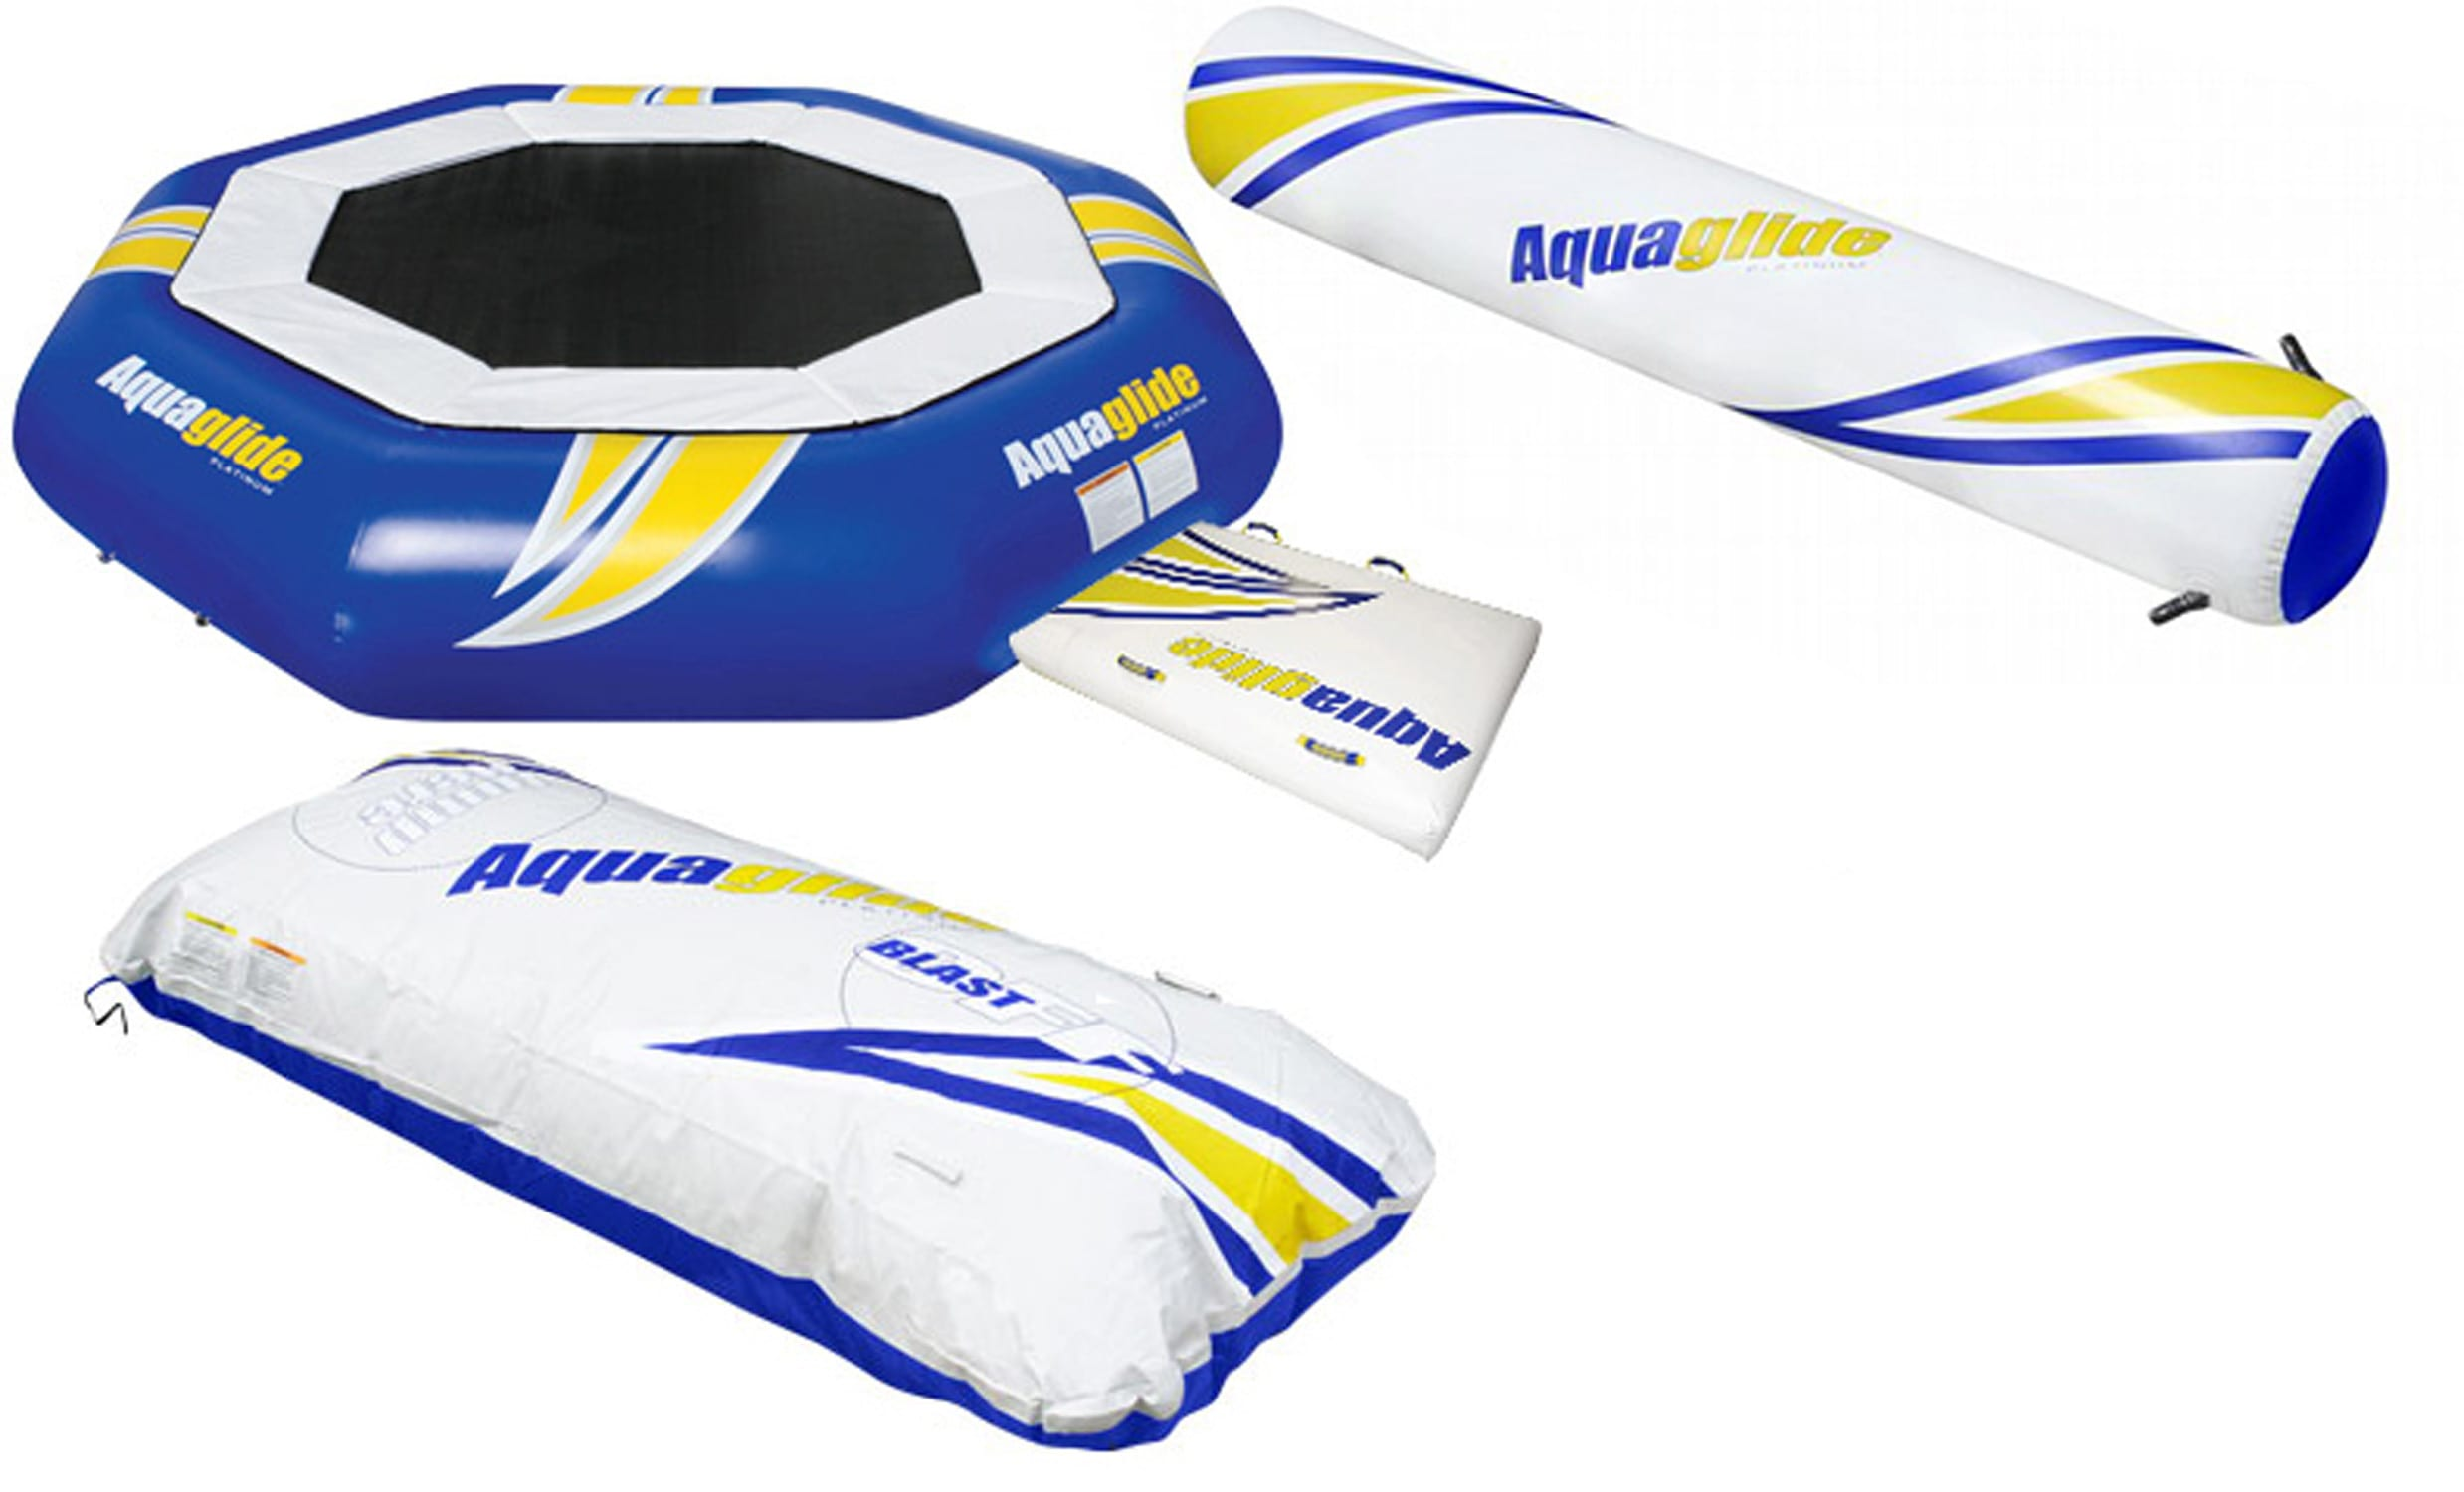 Click here for Aquaglide Supertramp Aquapark Bouncer 14' w/... prices